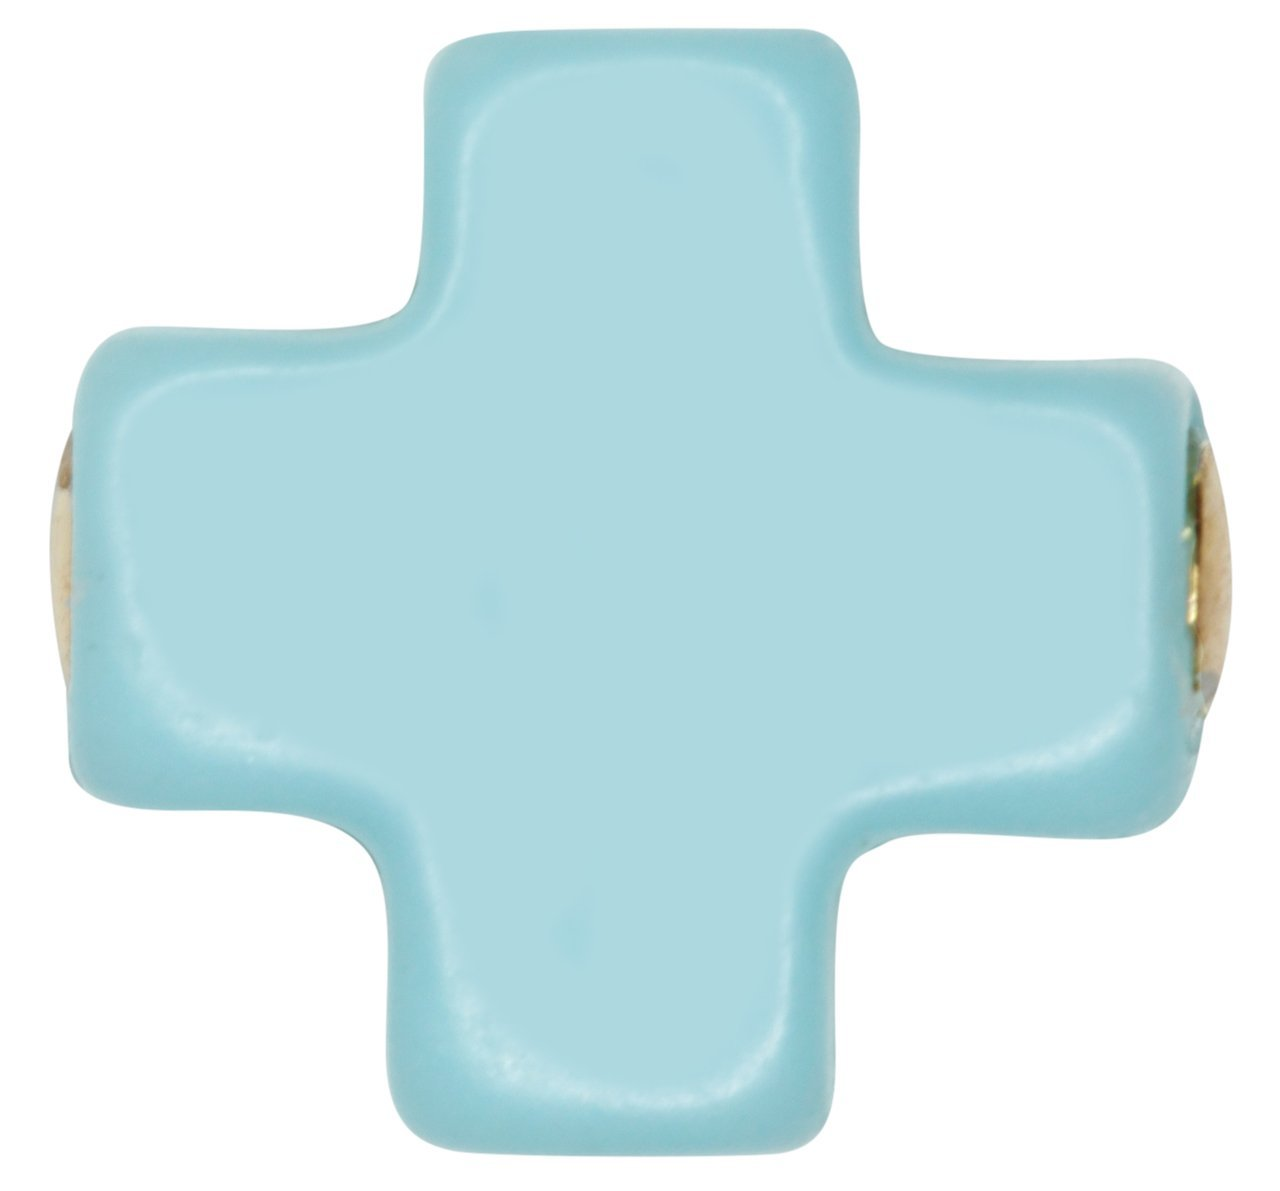 SIGNATURE CROSS STUDS- TURQUOISE - Molly's! A Chic and Unique Boutique